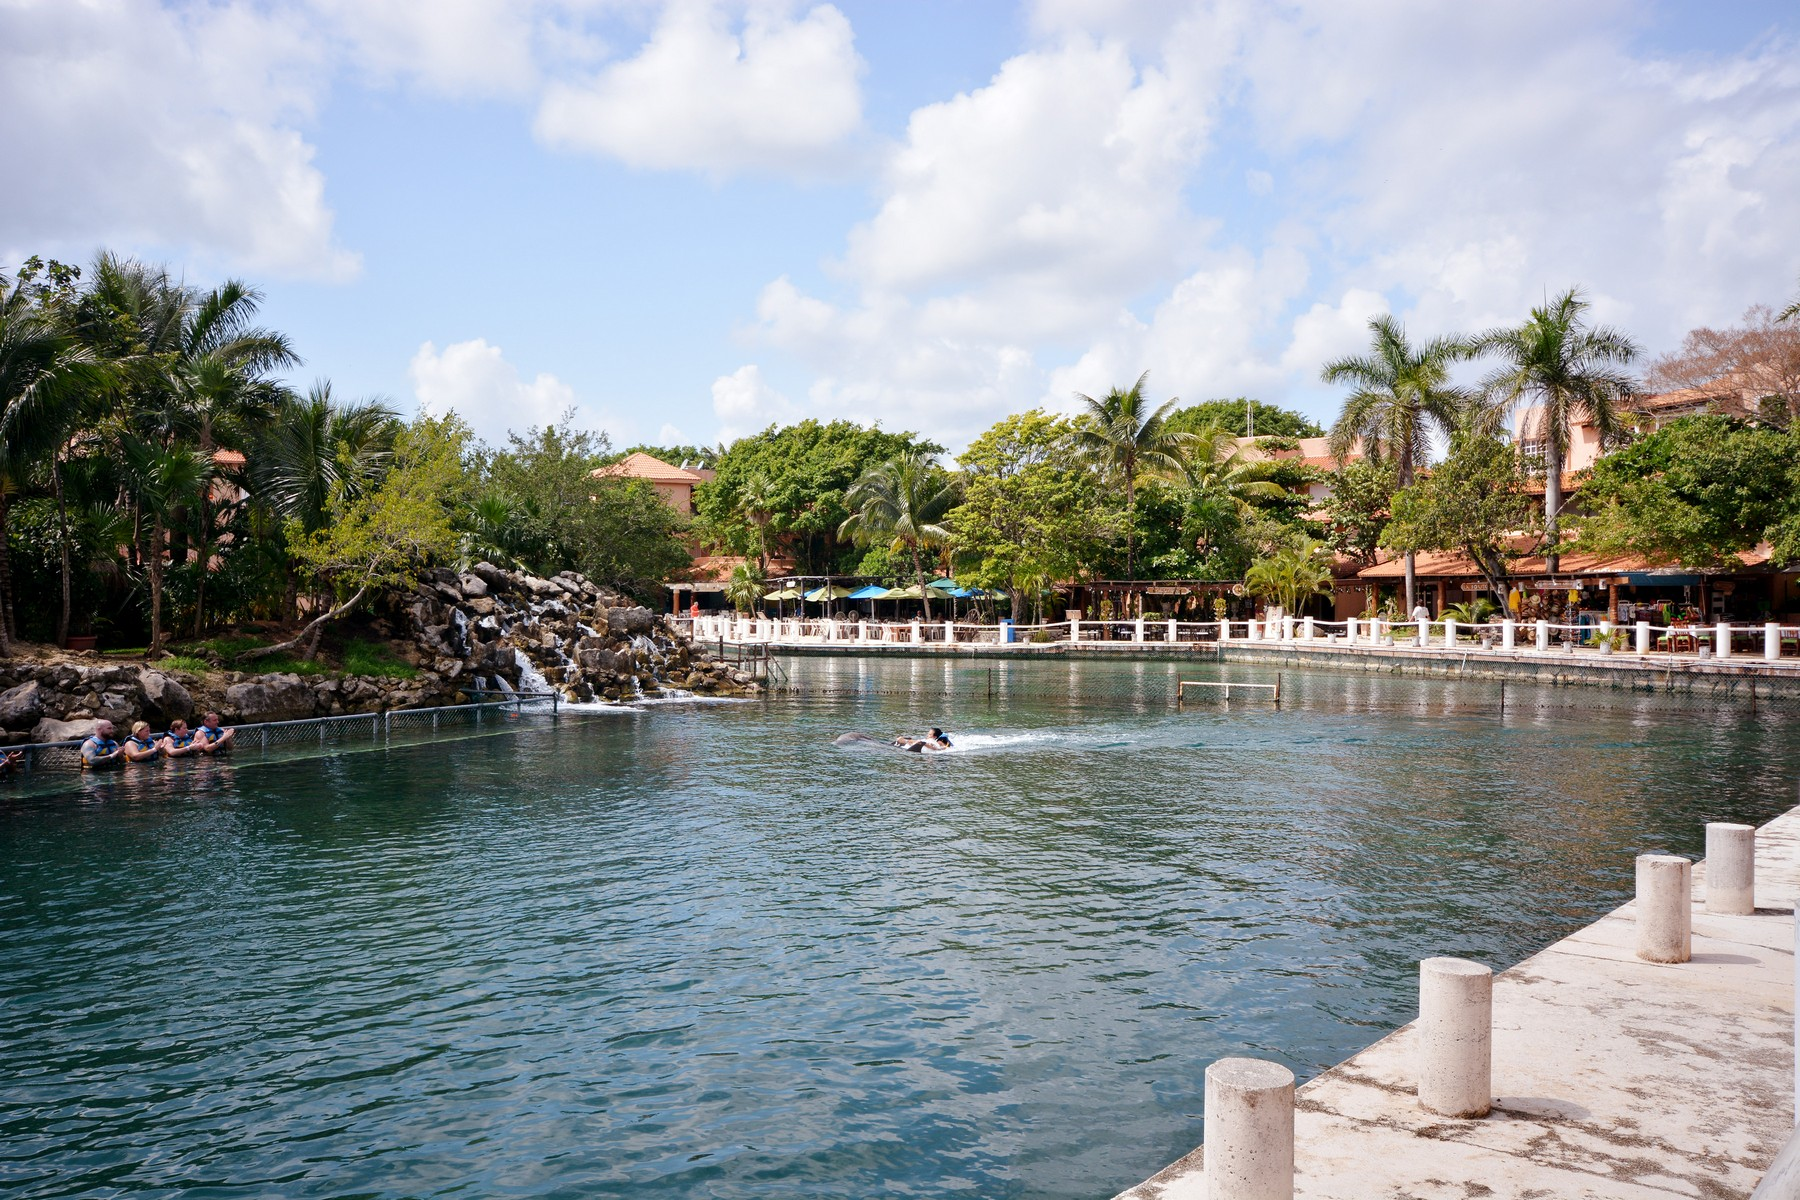 Additional photo for property listing at MARINA AND GOLF COURSE CONDOMINIUM Marina and golf course condominium Lot 9, Mza 37 Puerto Aventuras, Quintana Roo 77733 Mexico